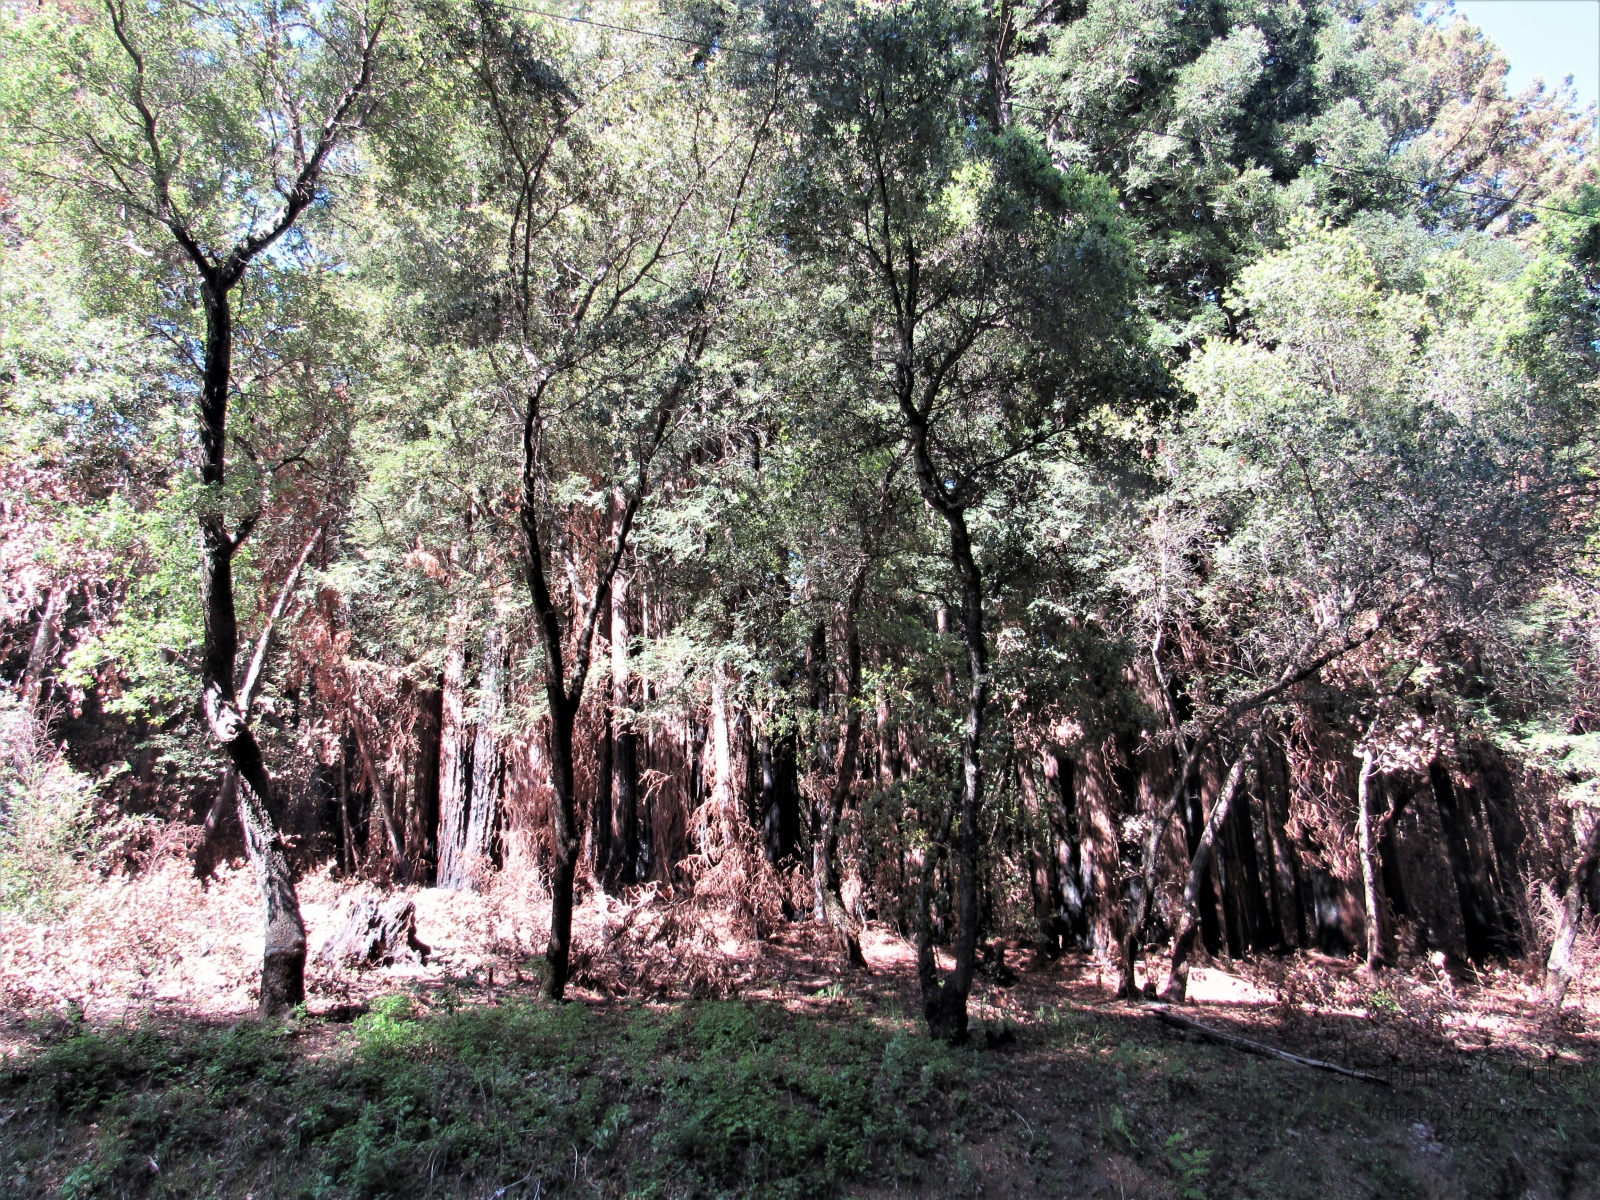 The-trees-and-the-forrest